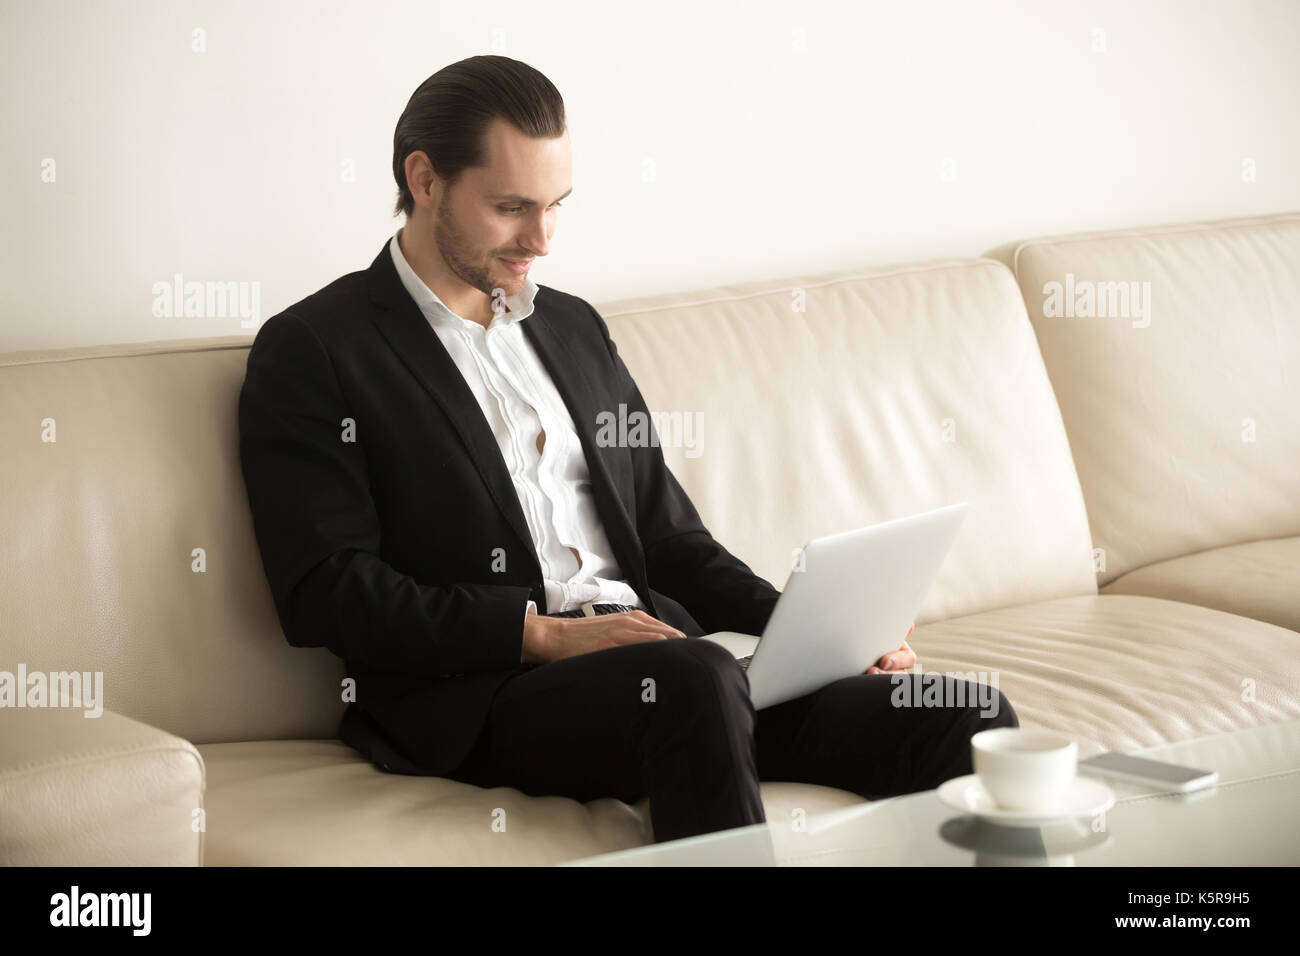 Smiling businessman working on laptop remotely from home. - Stock Image